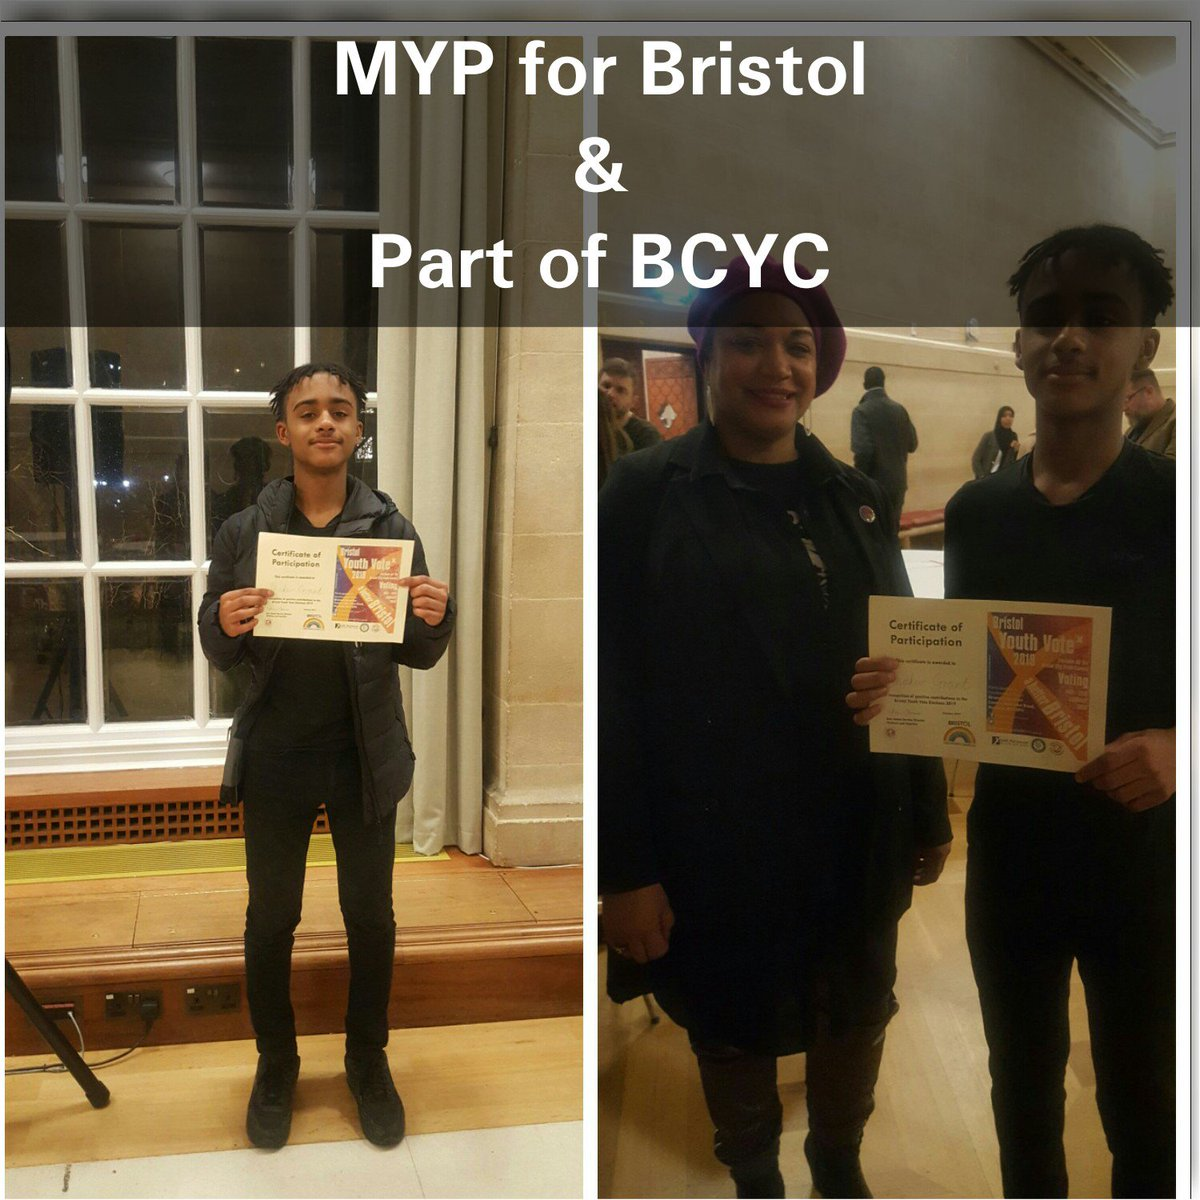 https://t.co/KOY3hVGUzm Priveledged to be part of the #YouthParliament here is my #Manifesto for all that didn't hear it #YouthParliament #MYP #BCYC #Bristol https://t.co/l5ZssY5MIr